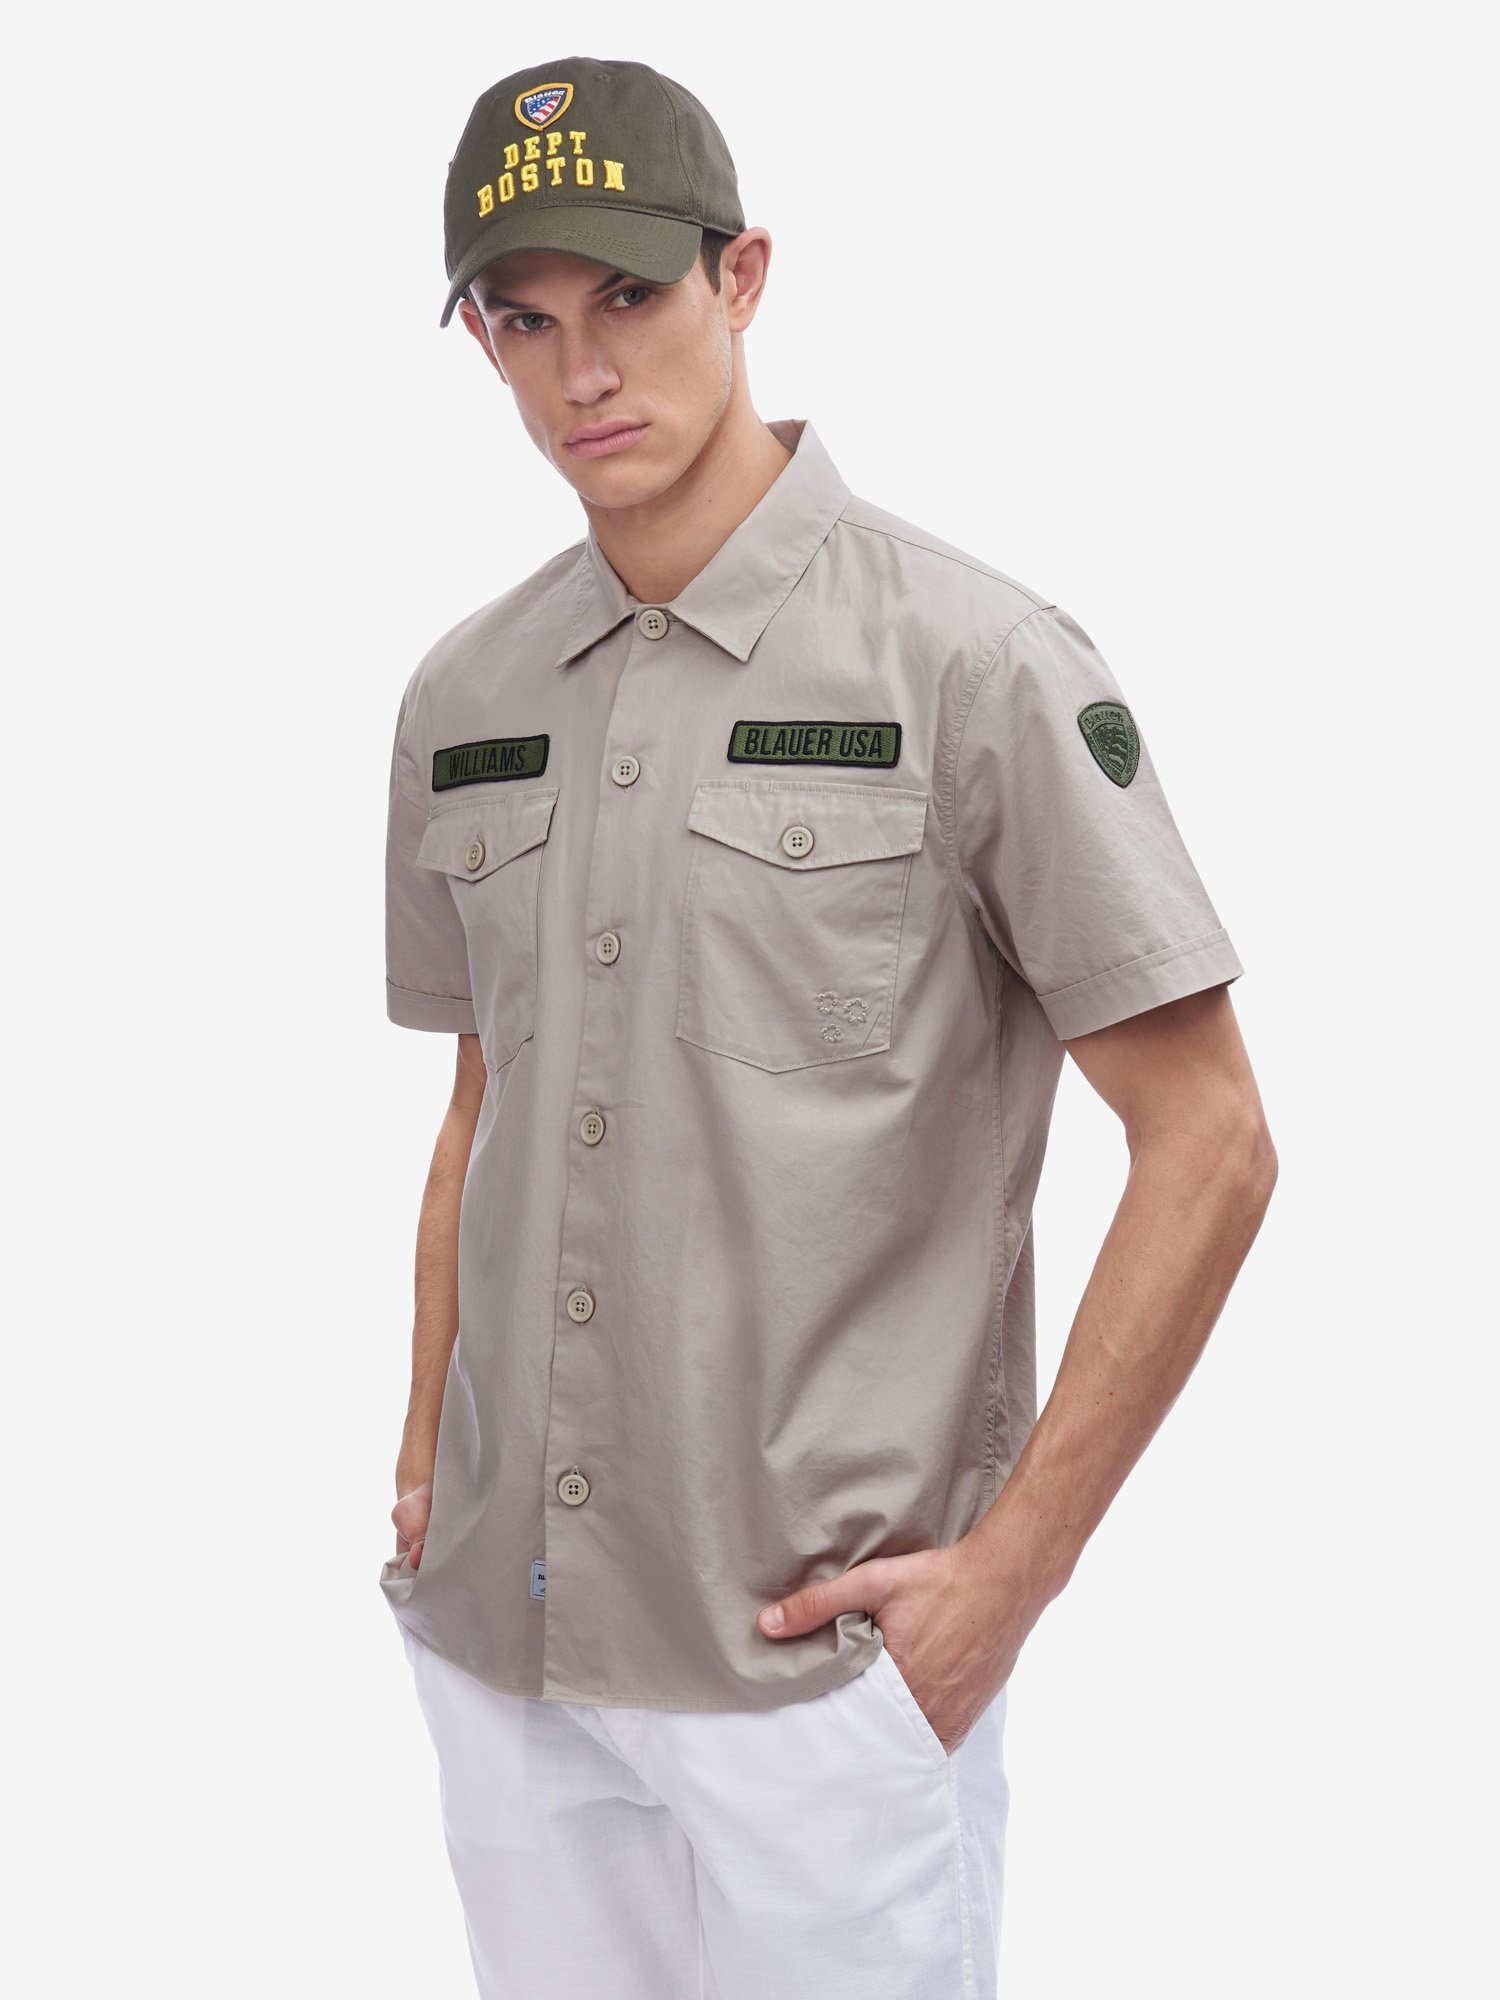 Blauer - SHORT SLEEVE MILITARY SHIRT - Gray Sand - Blauer